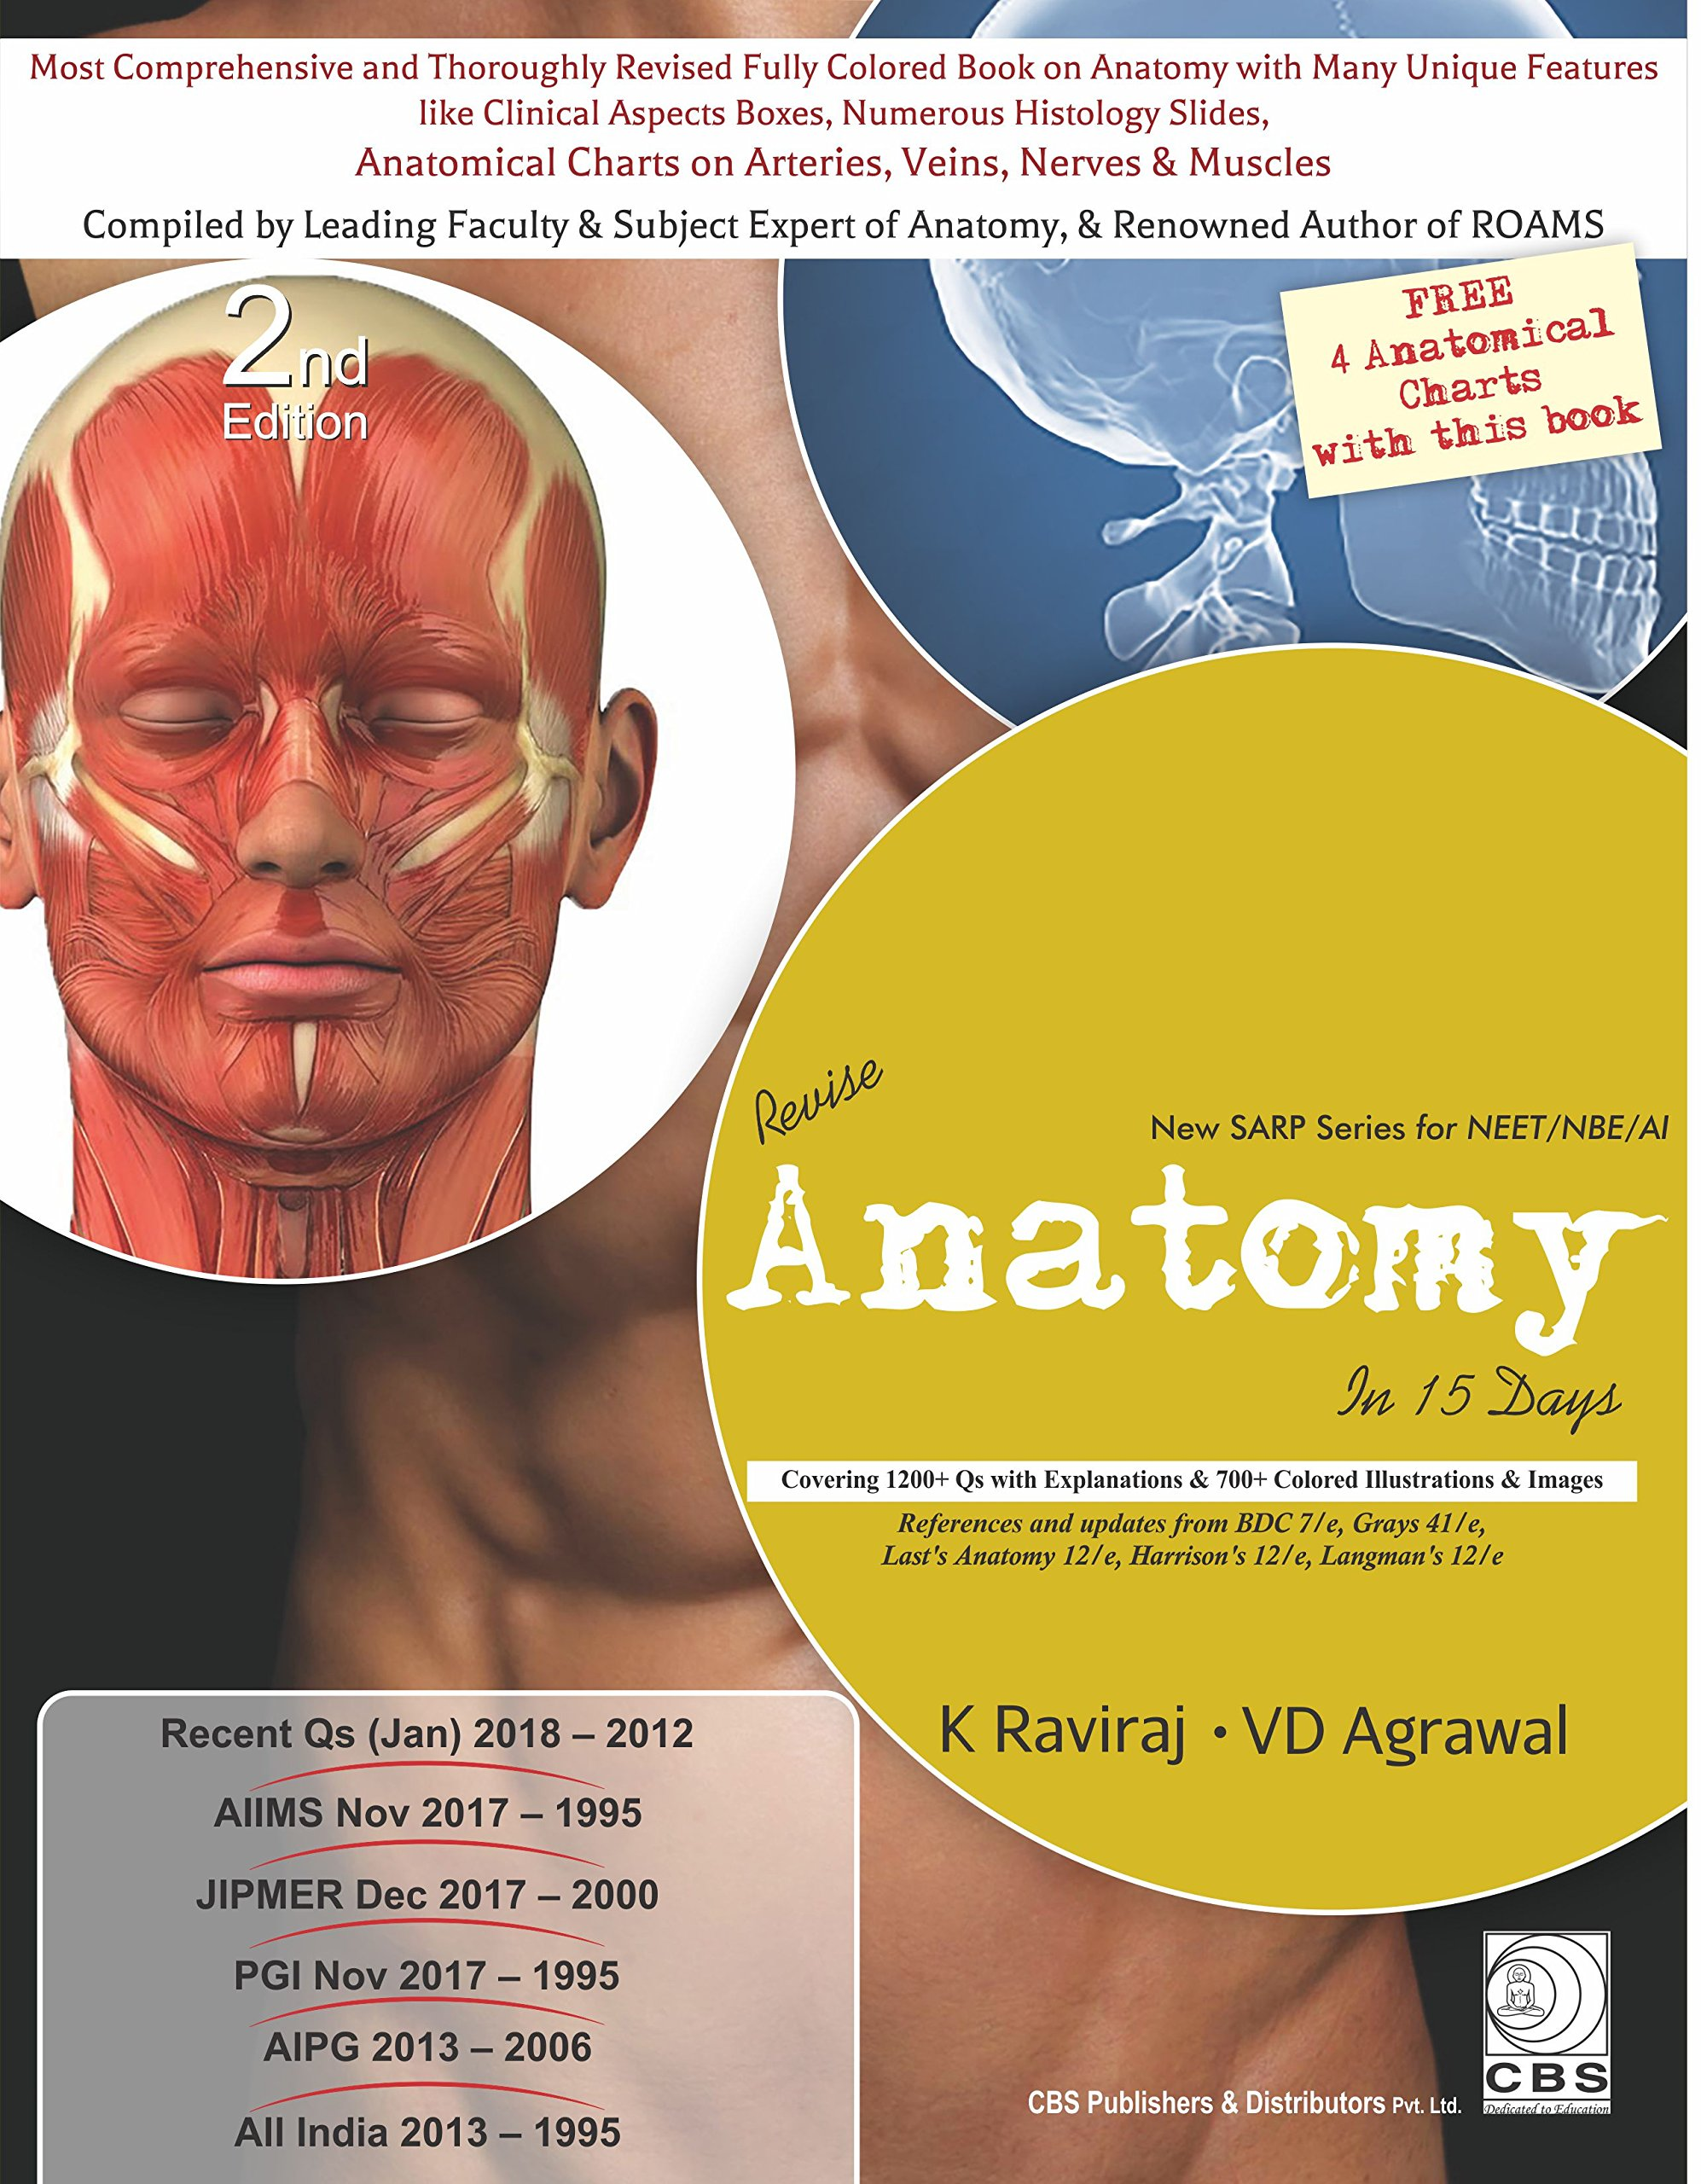 Buy Revise Anatomy in 15 Days (New SARP Series for NEET/NBE